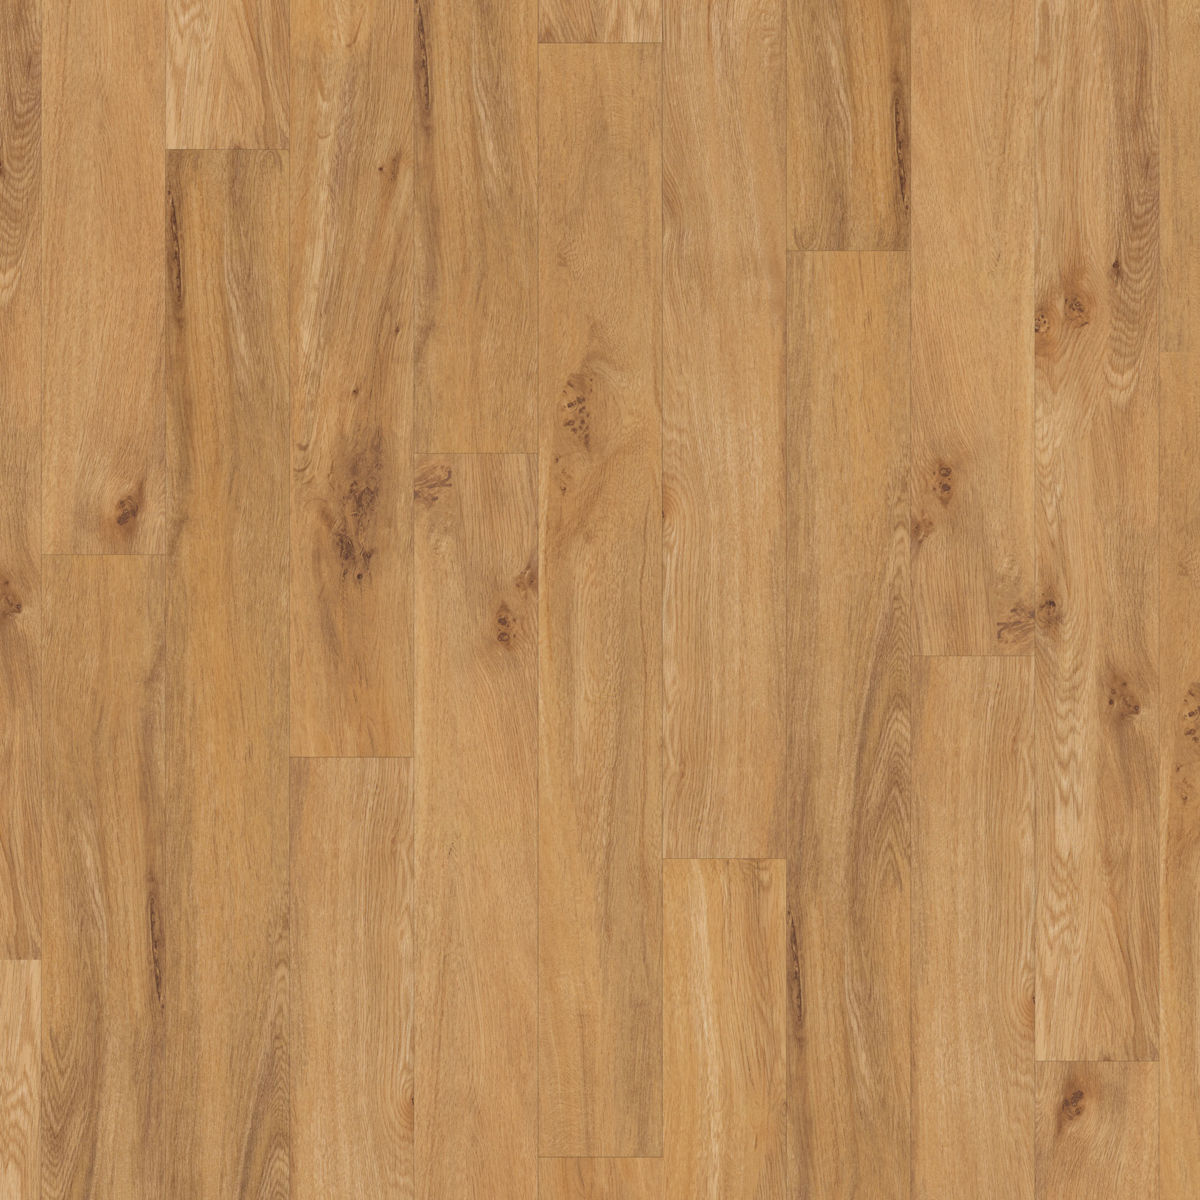 Karndean knight tile warm oak for Parquet wood flooring